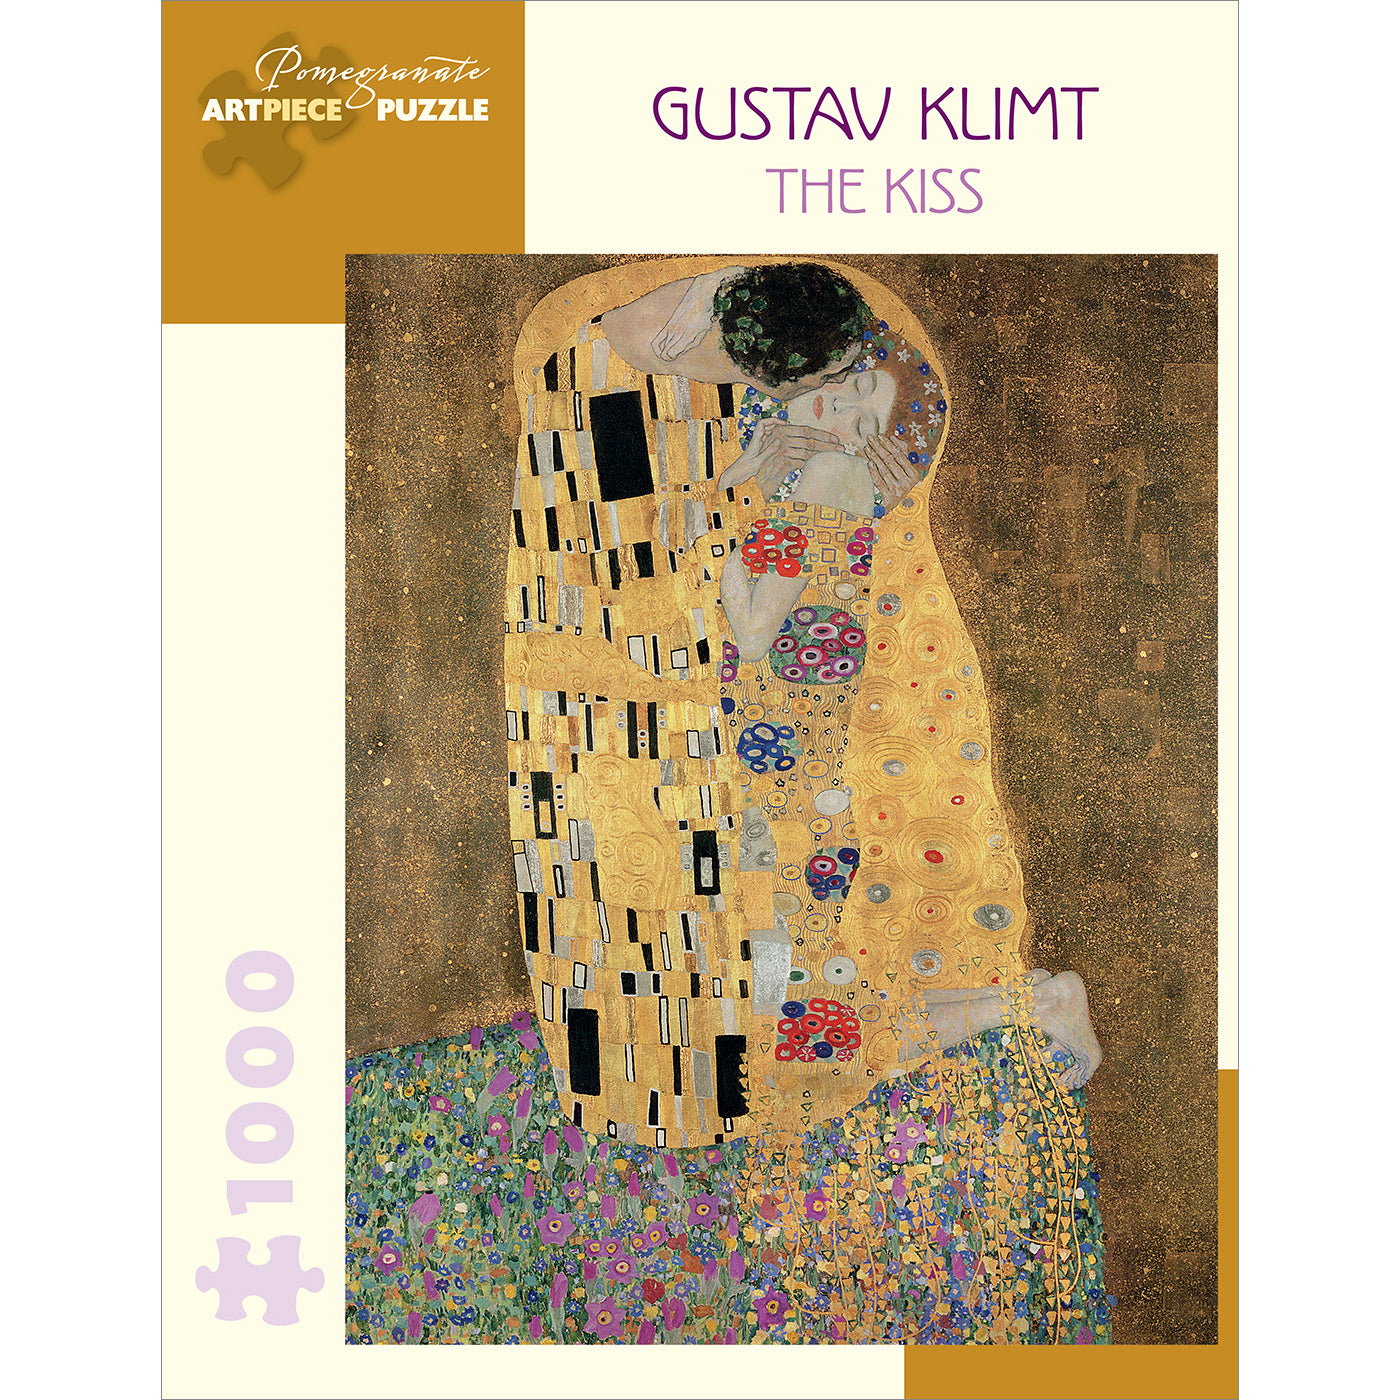 Gustav Klimt's <i>The Kiss</i> Puzzle - 1,000 Pieces